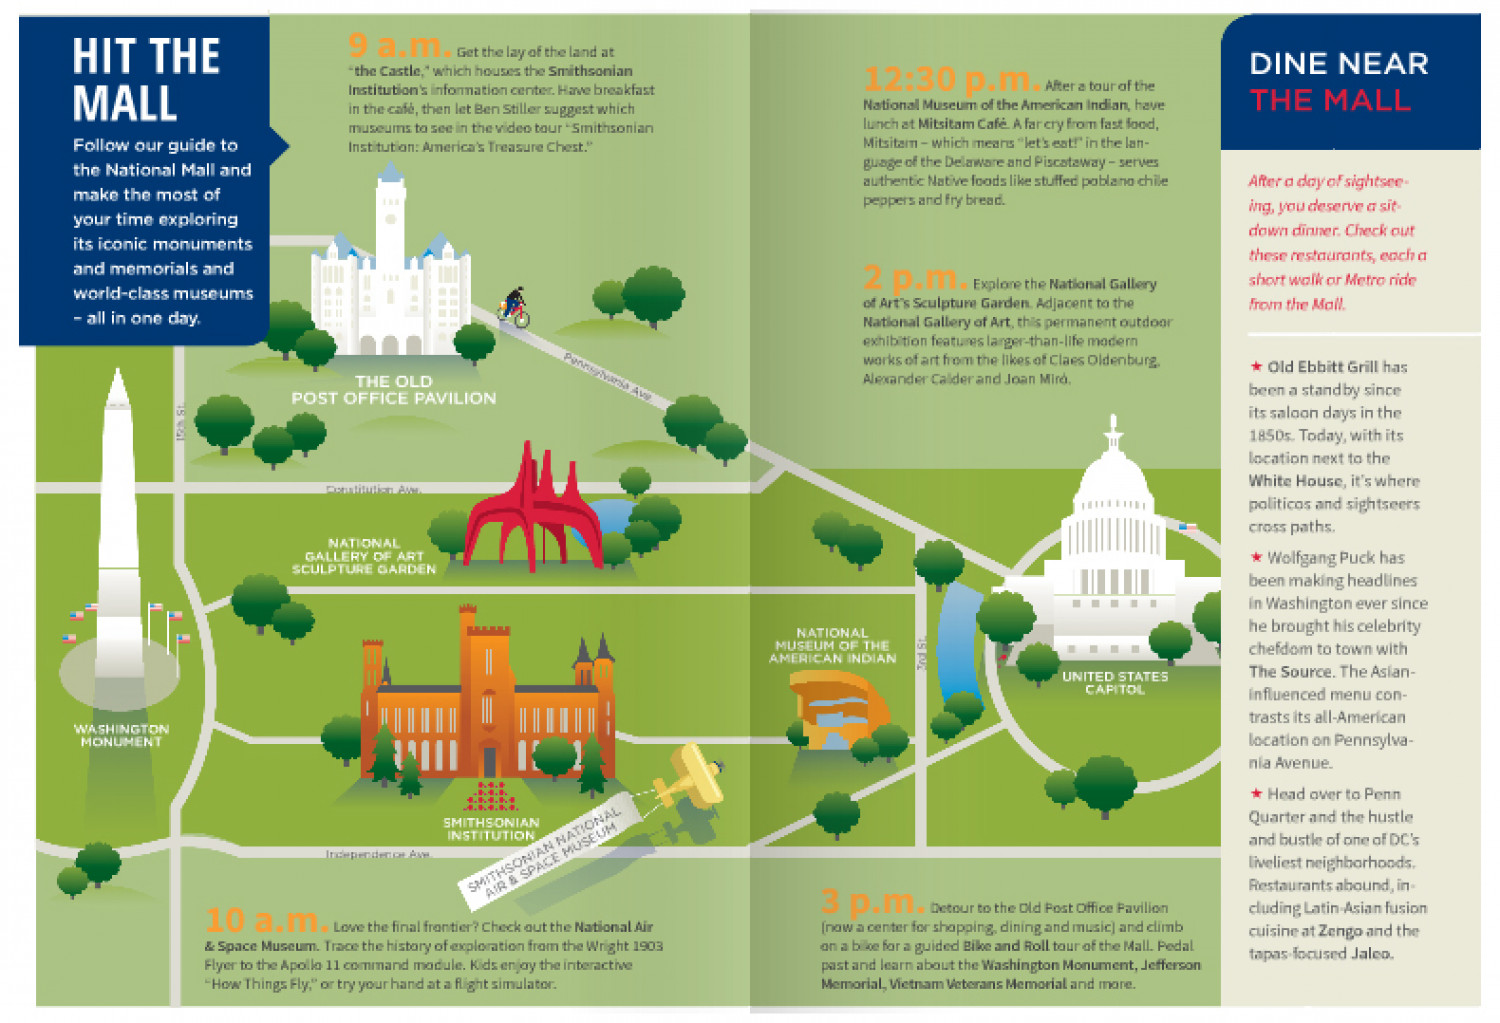 national mall visitor guide map infographic. national mall visitor guide map  visually